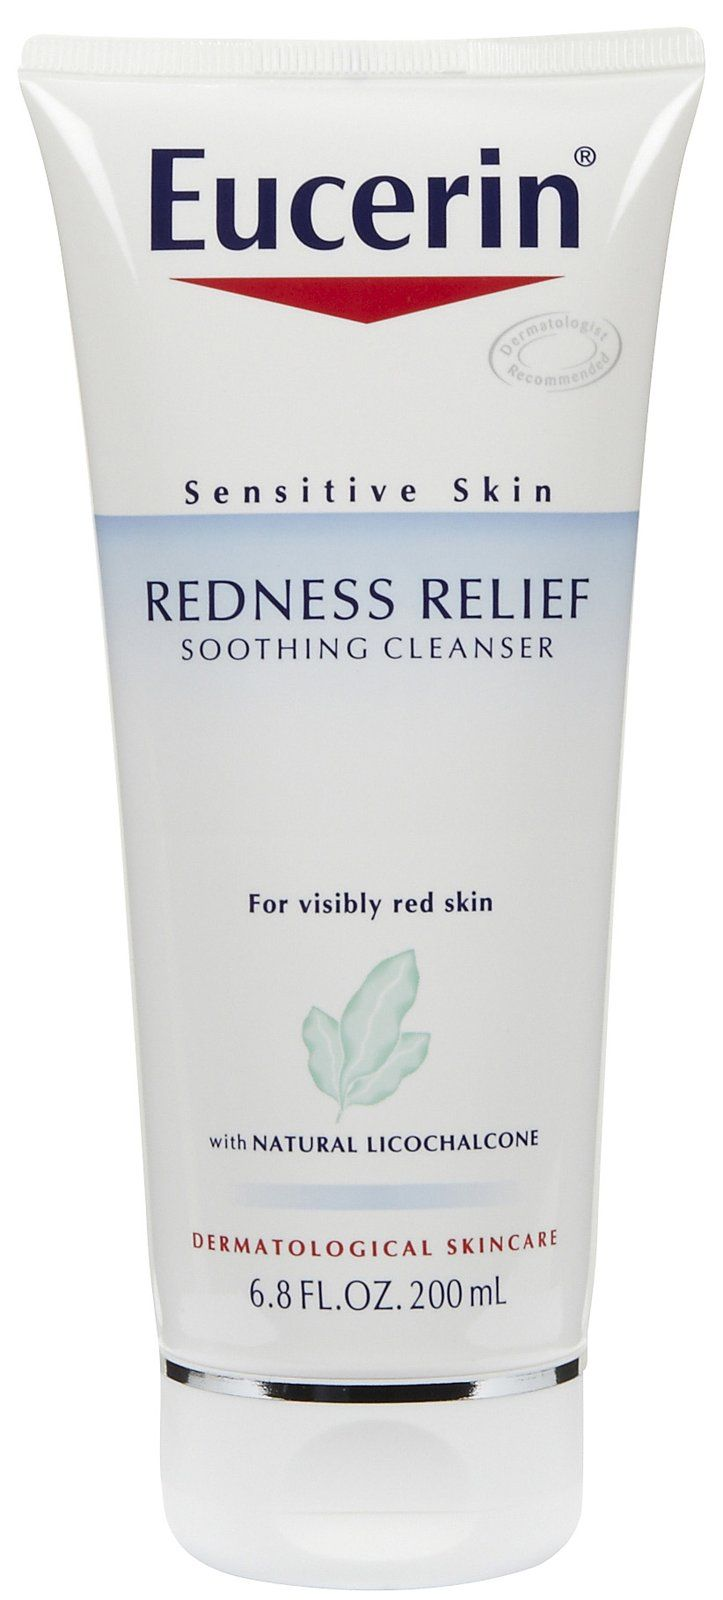 Eucerin Redness Relief Soothing Facial Cleanser - Great For My Rosacea!!! I Love This Stuff!!!